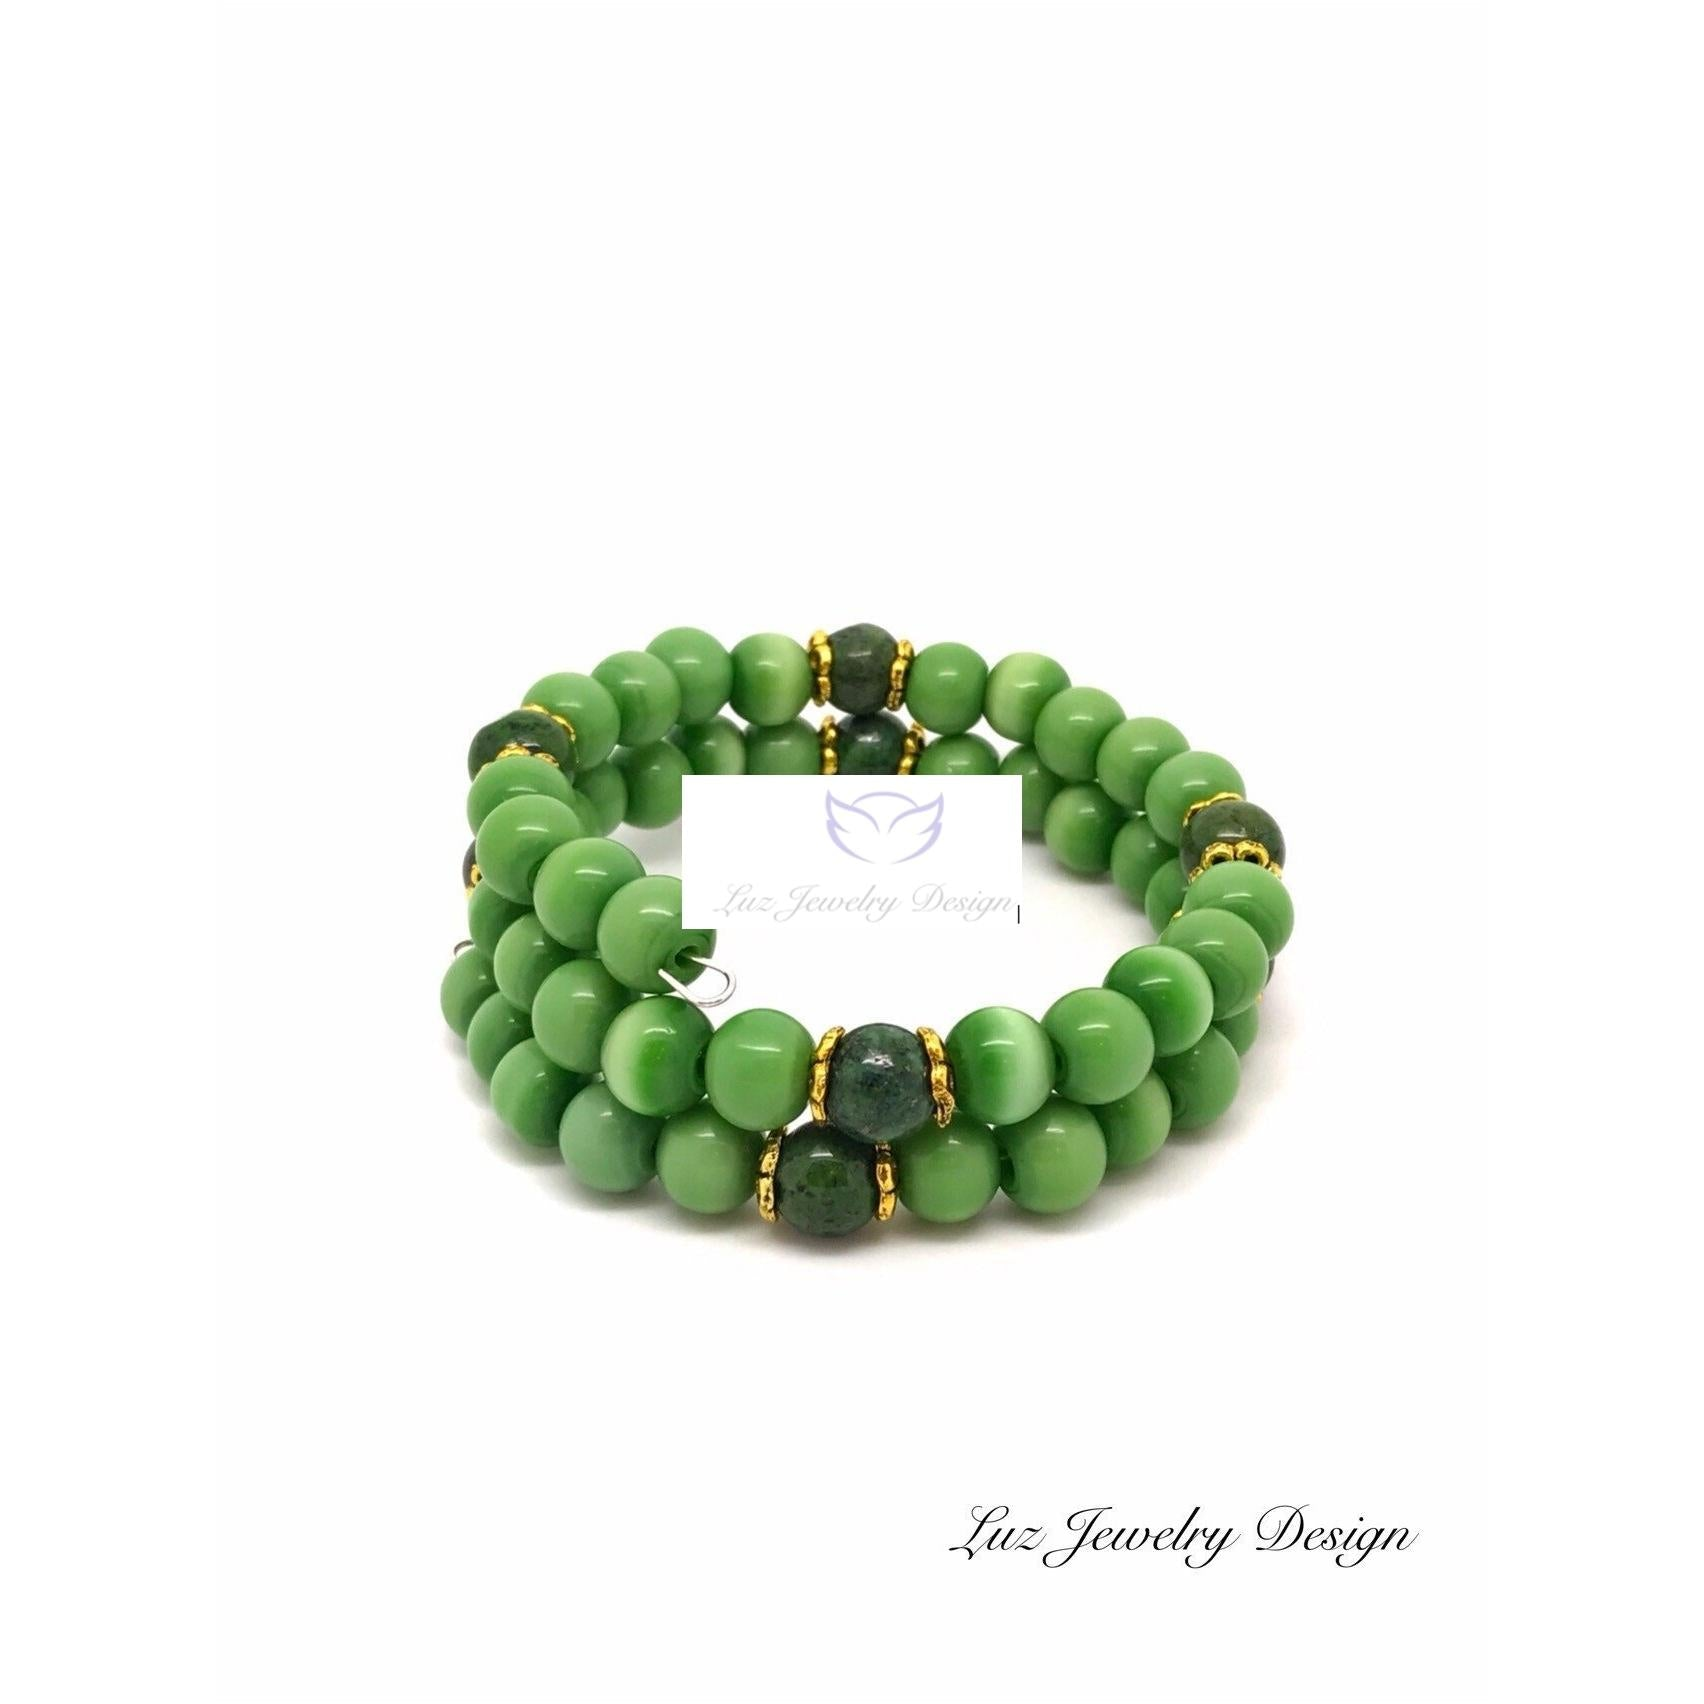 Green memory bracelet - Green gold memory bracelet - handcrafted Jewelry Luzjewelrydesign